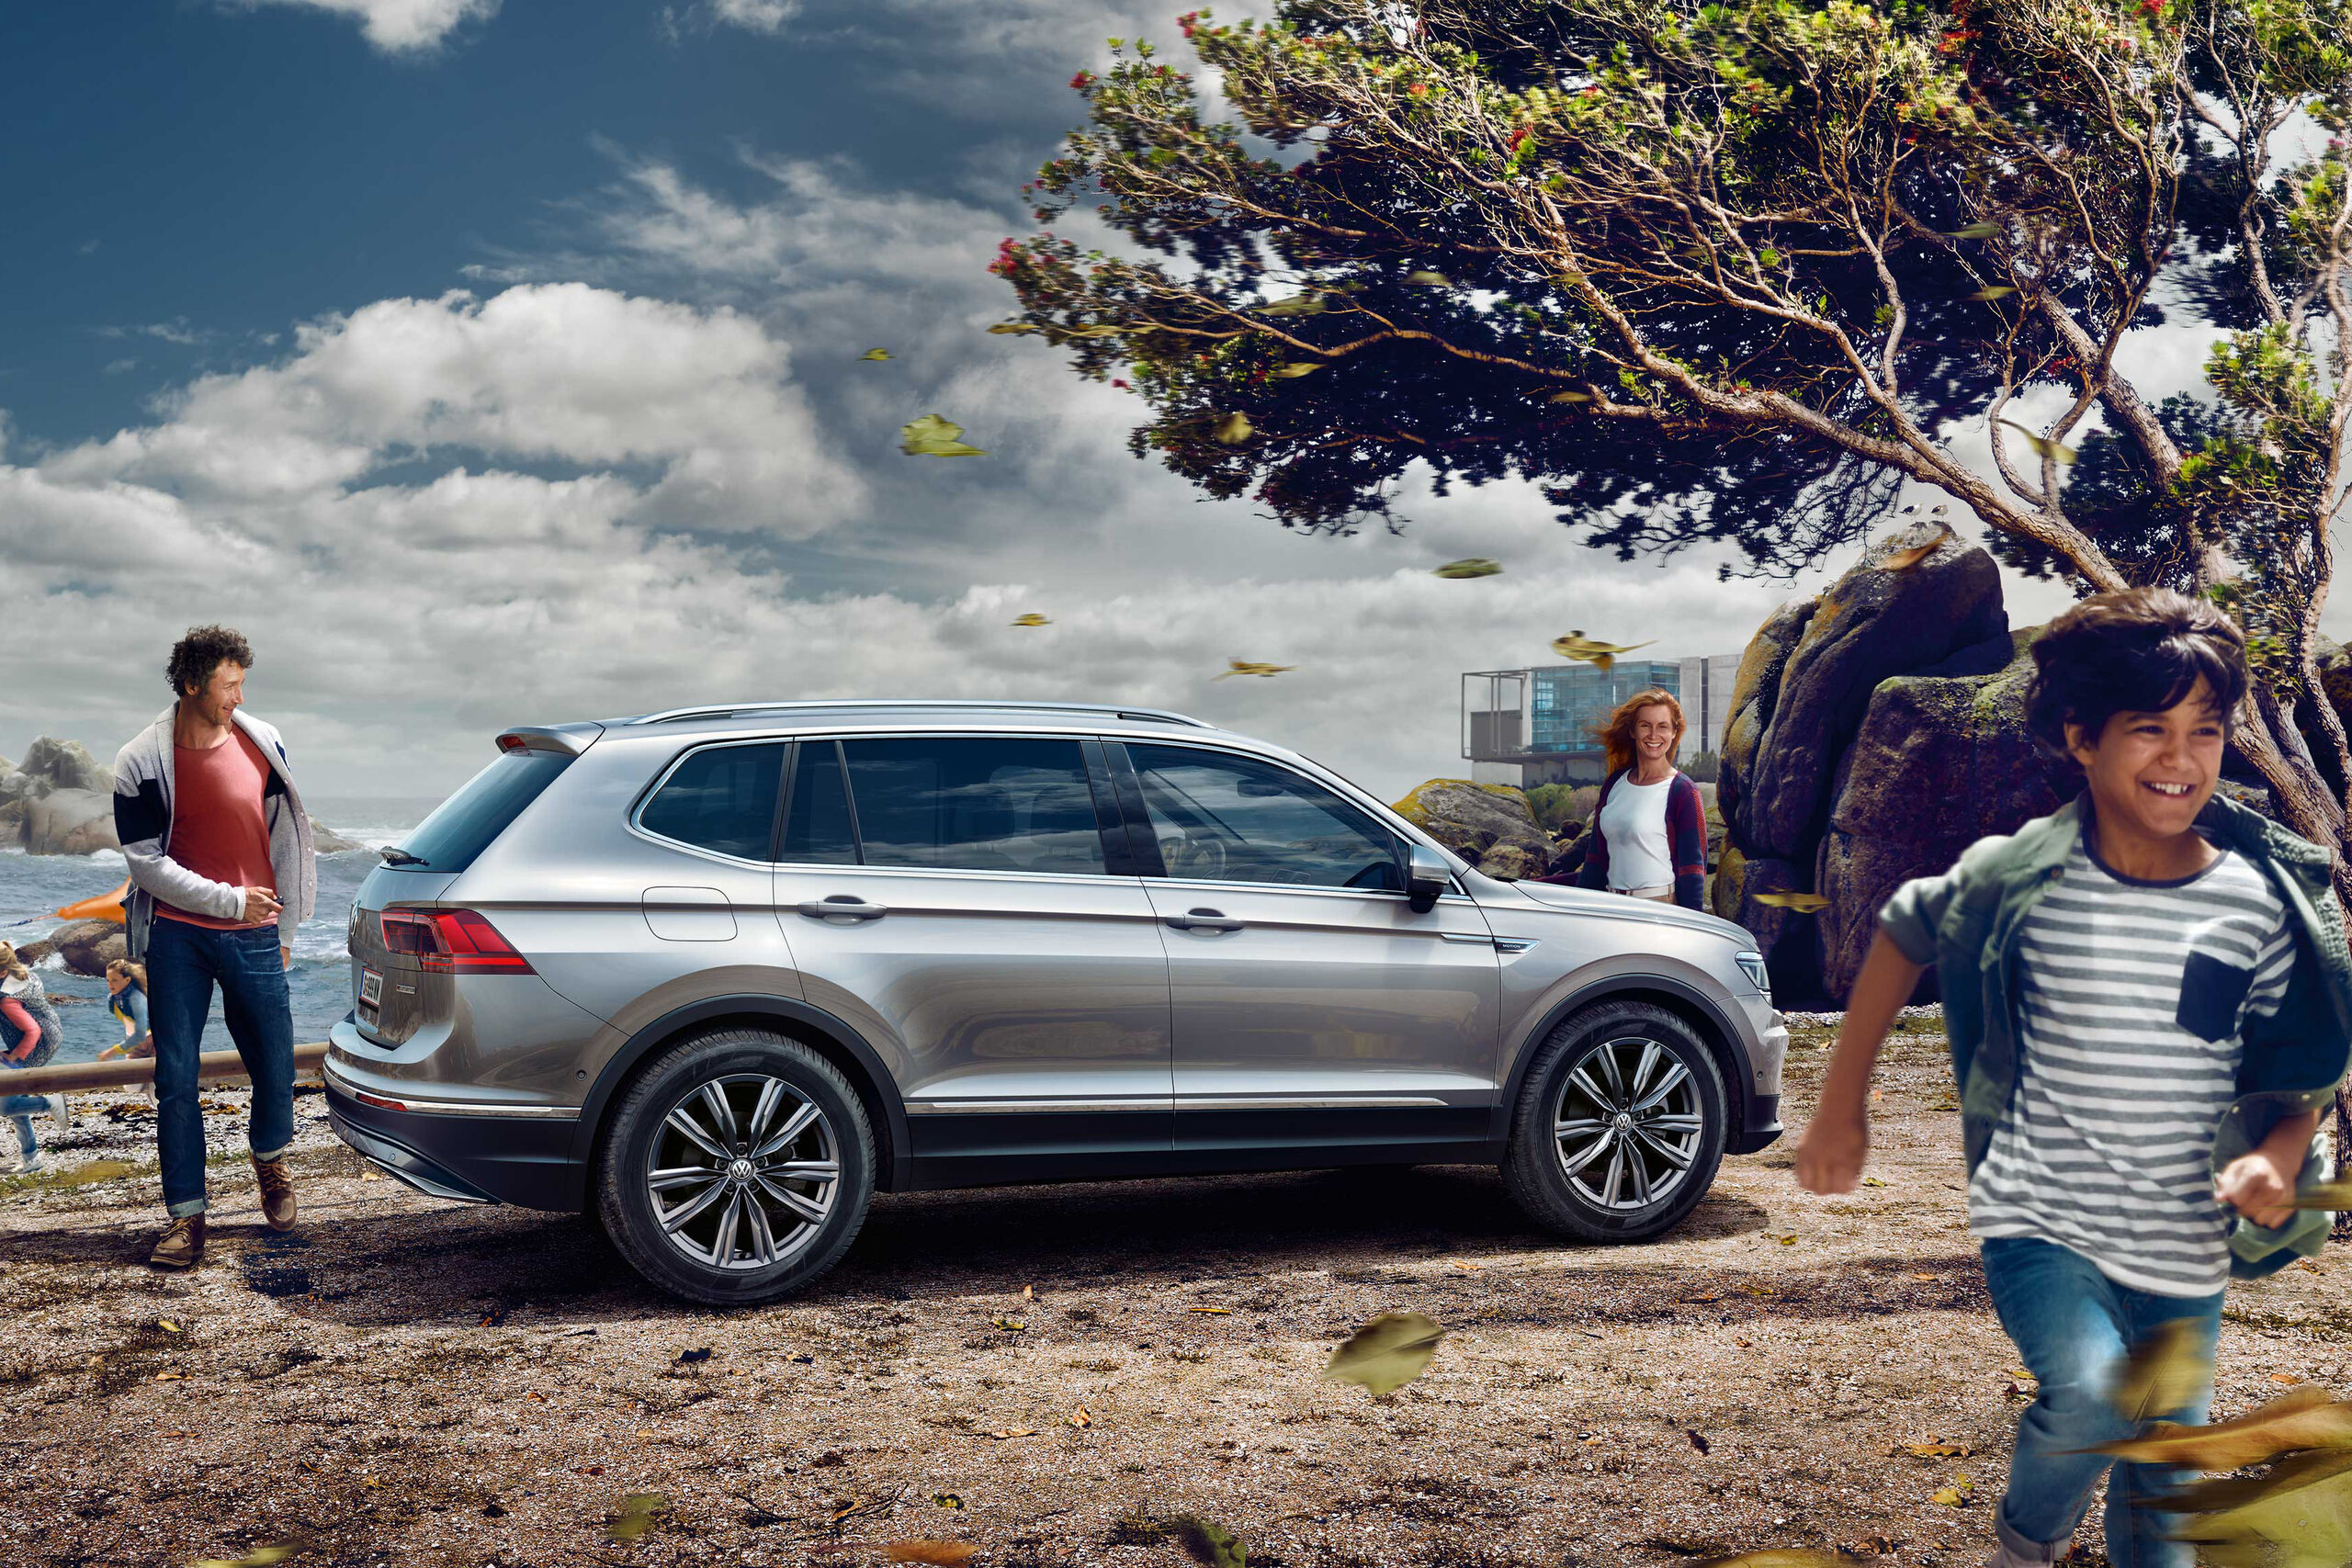 VW volkswagen Tiguan Allspace бял страничен изглед